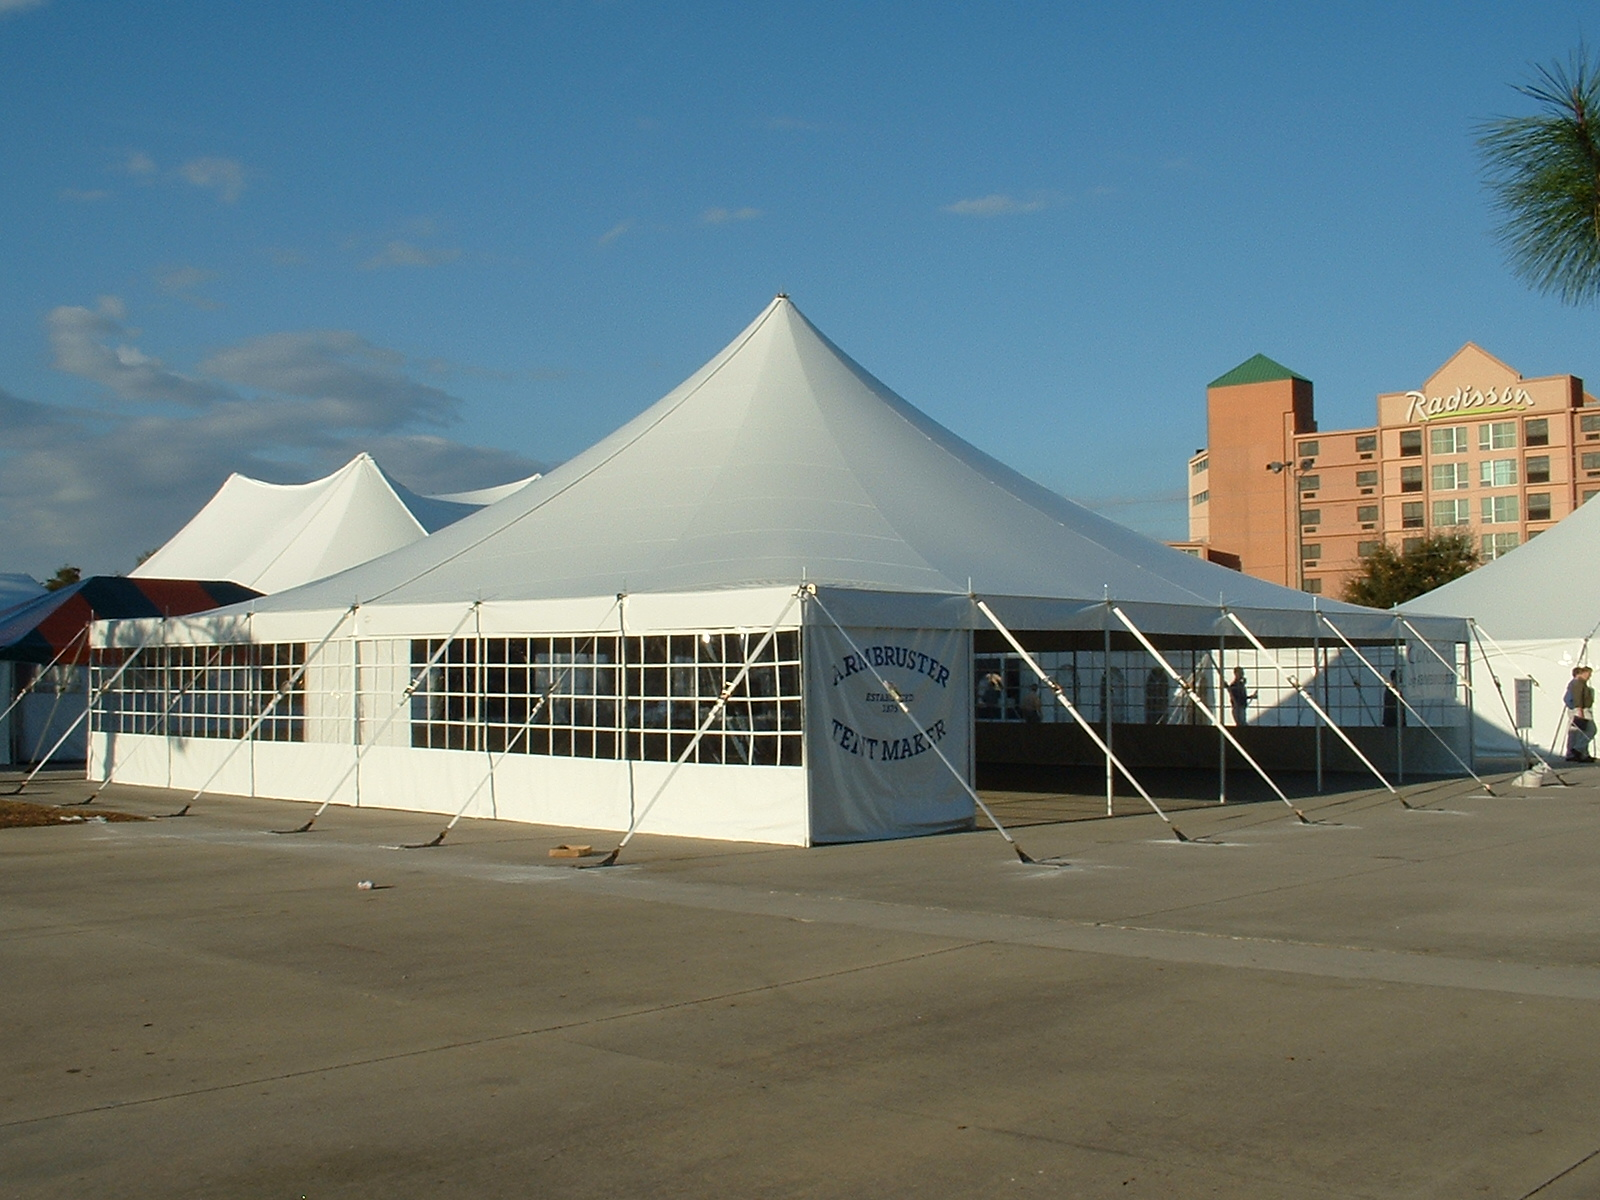 Contact us today for a quote on any of our select line of tents with our most current specials. Many sizes in stock. Armbruster offers the highest quality ... & WINTER SPECIALS on Party Tents! | Armbruster Tent Maker